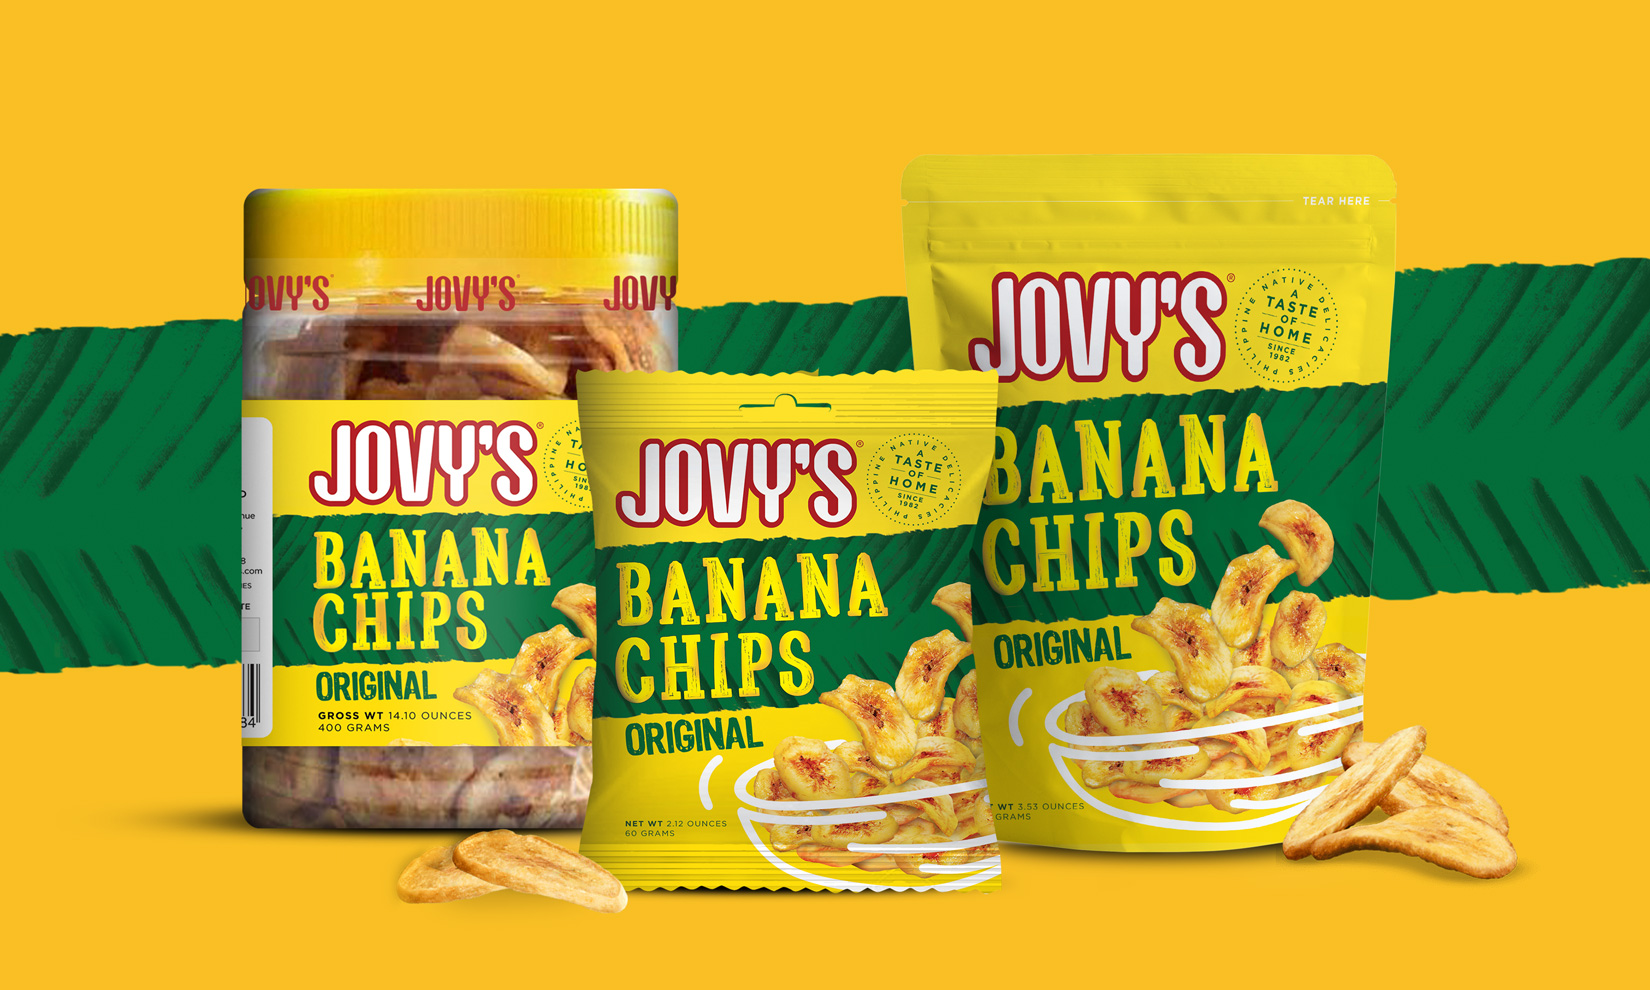 Jovy's-Products-Group-1-Banana-Chips